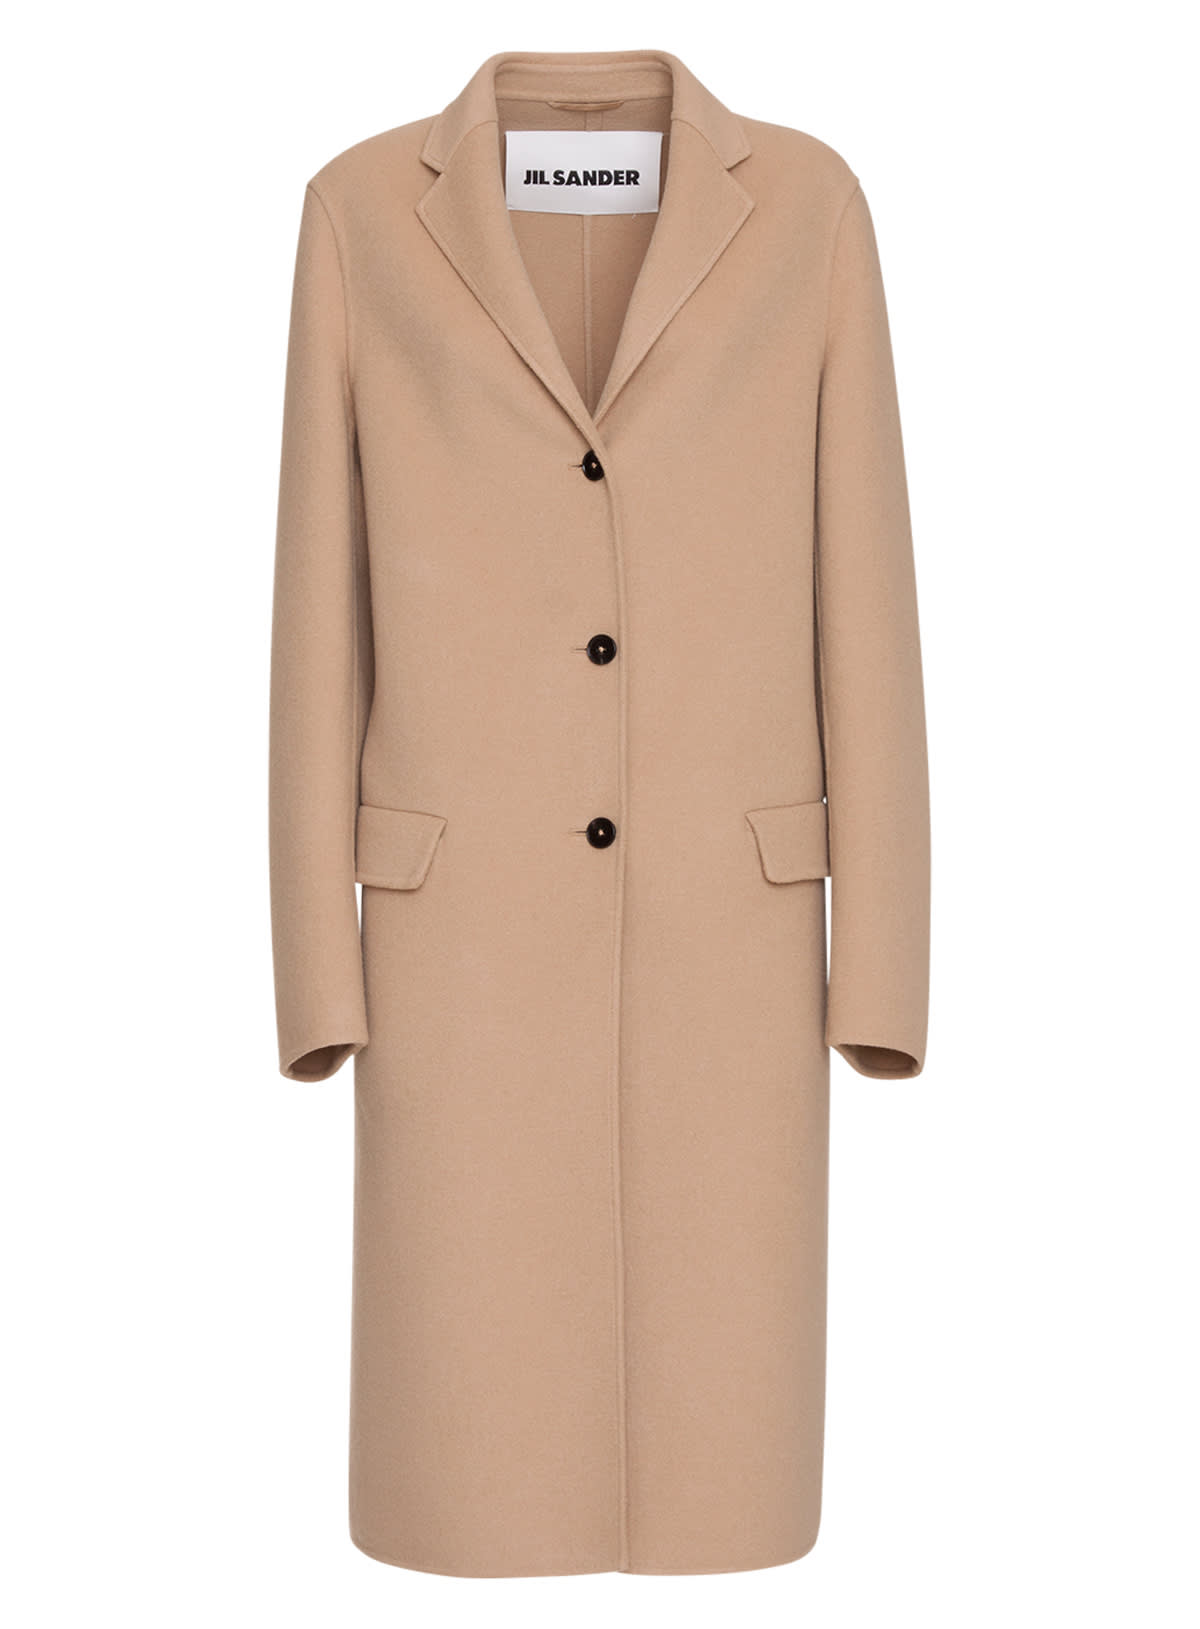 Jil Sander Cashmere Single-breasted Coat